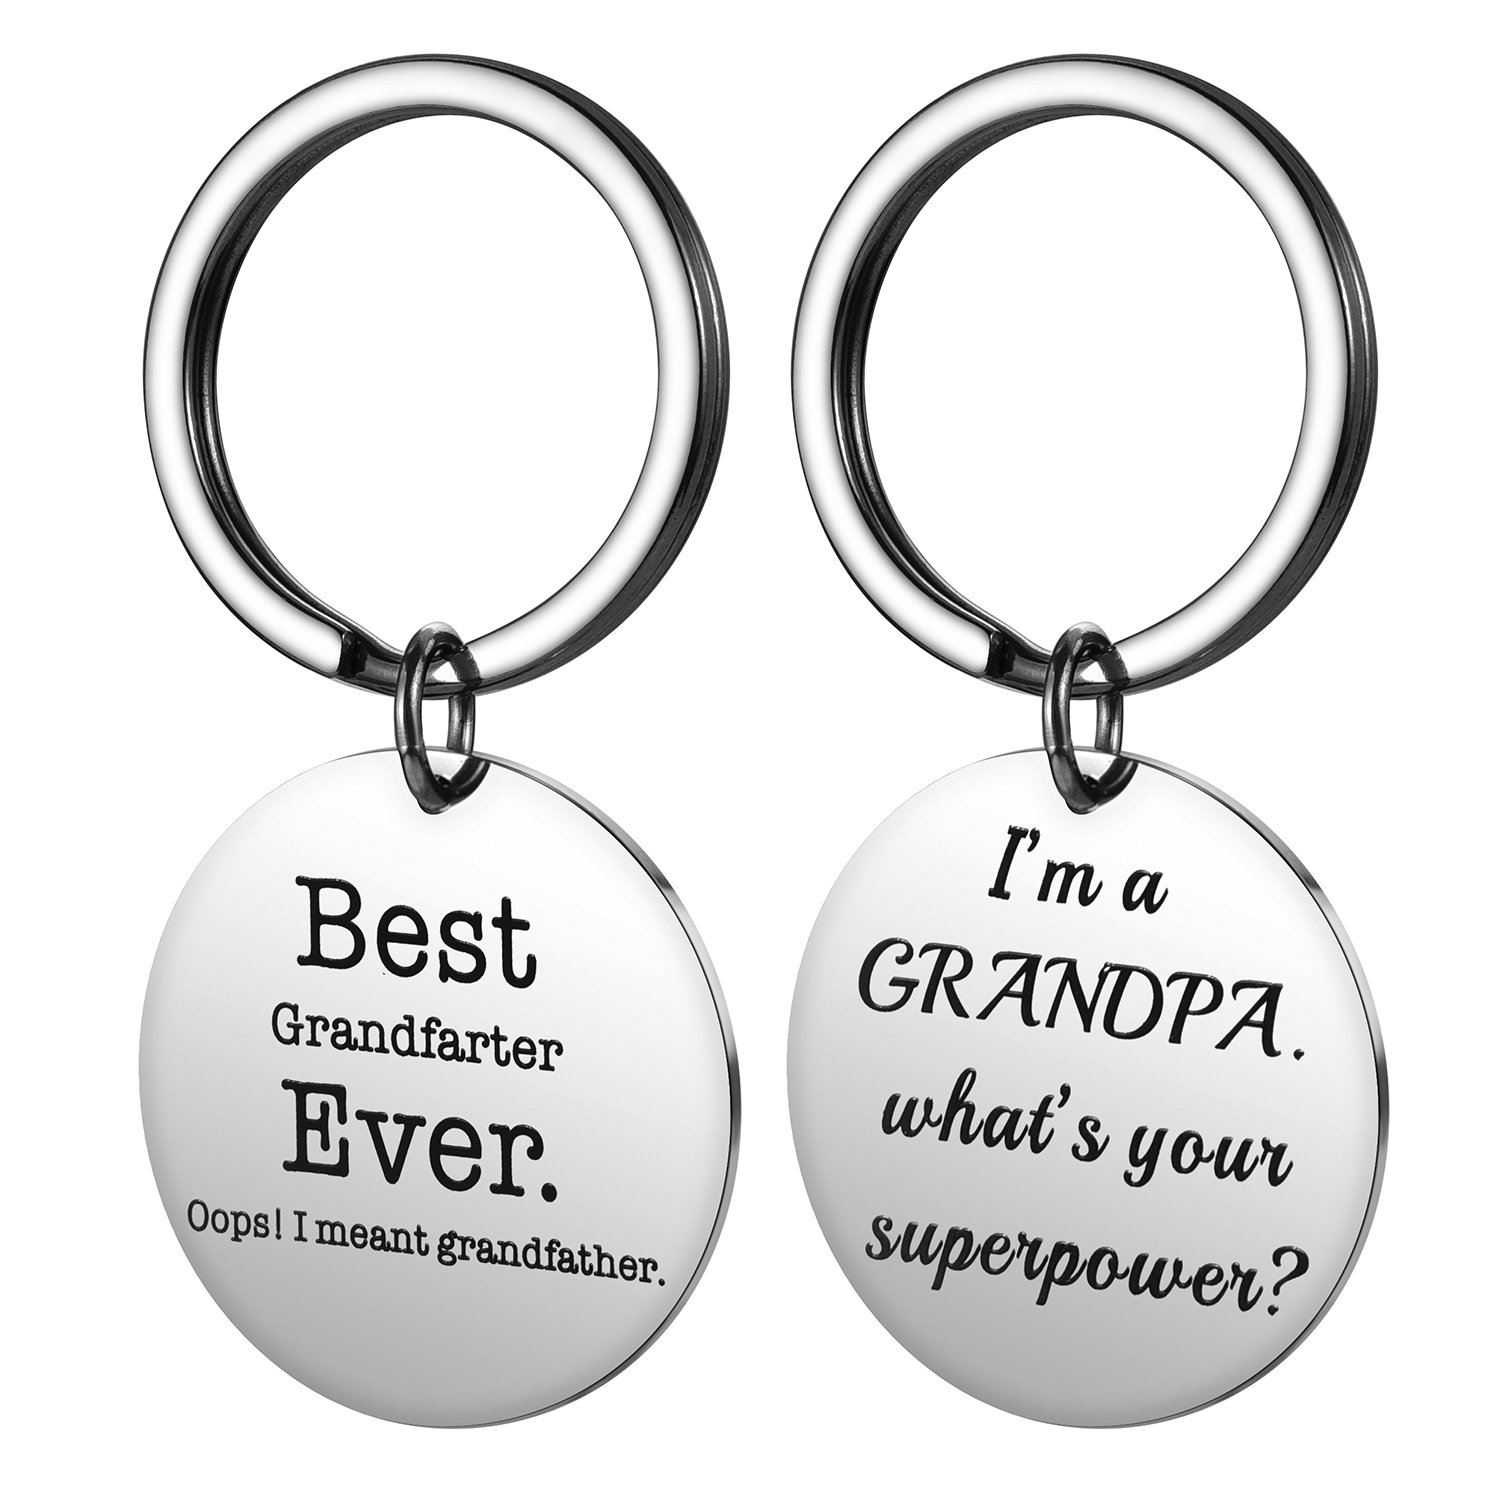 Alxeani Fathers Day Gifts for Grandpa, Grandpa Keychain Best Grandfarter Ever Meant Grandfather Gift Stainless Steel 2Pcs